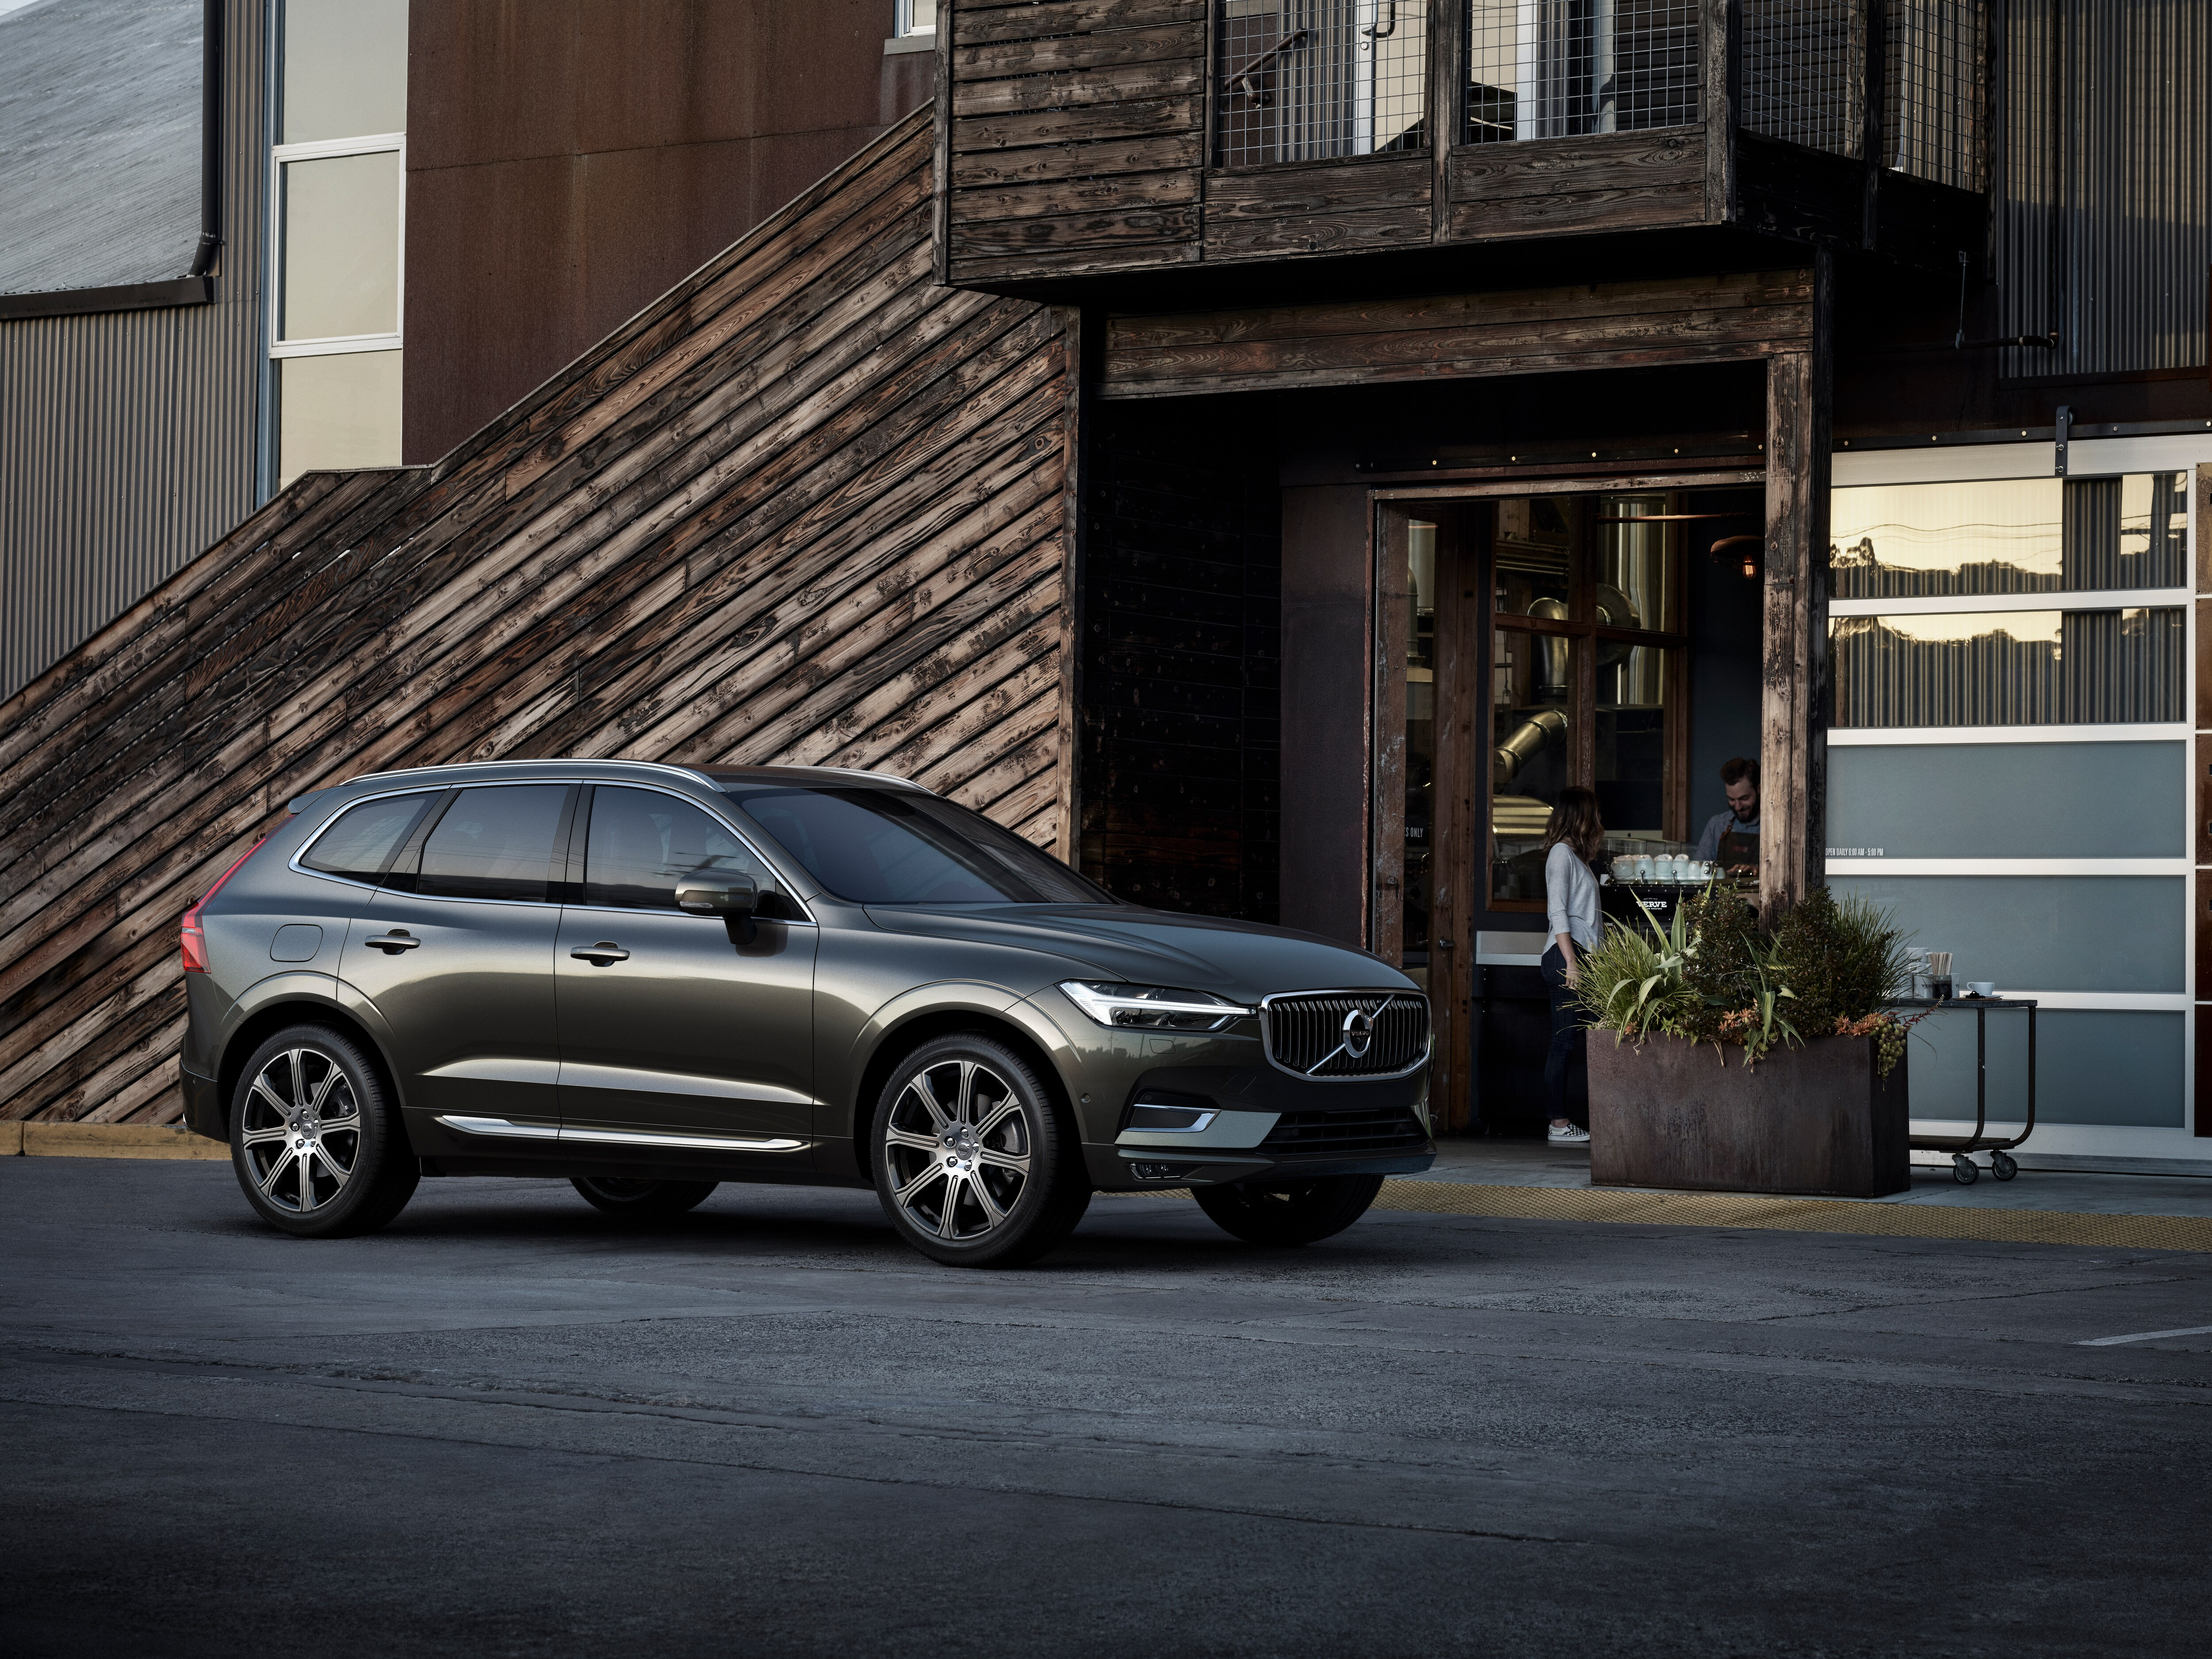 The new Volvo XC60 Incription luxury trim parked in front of a café